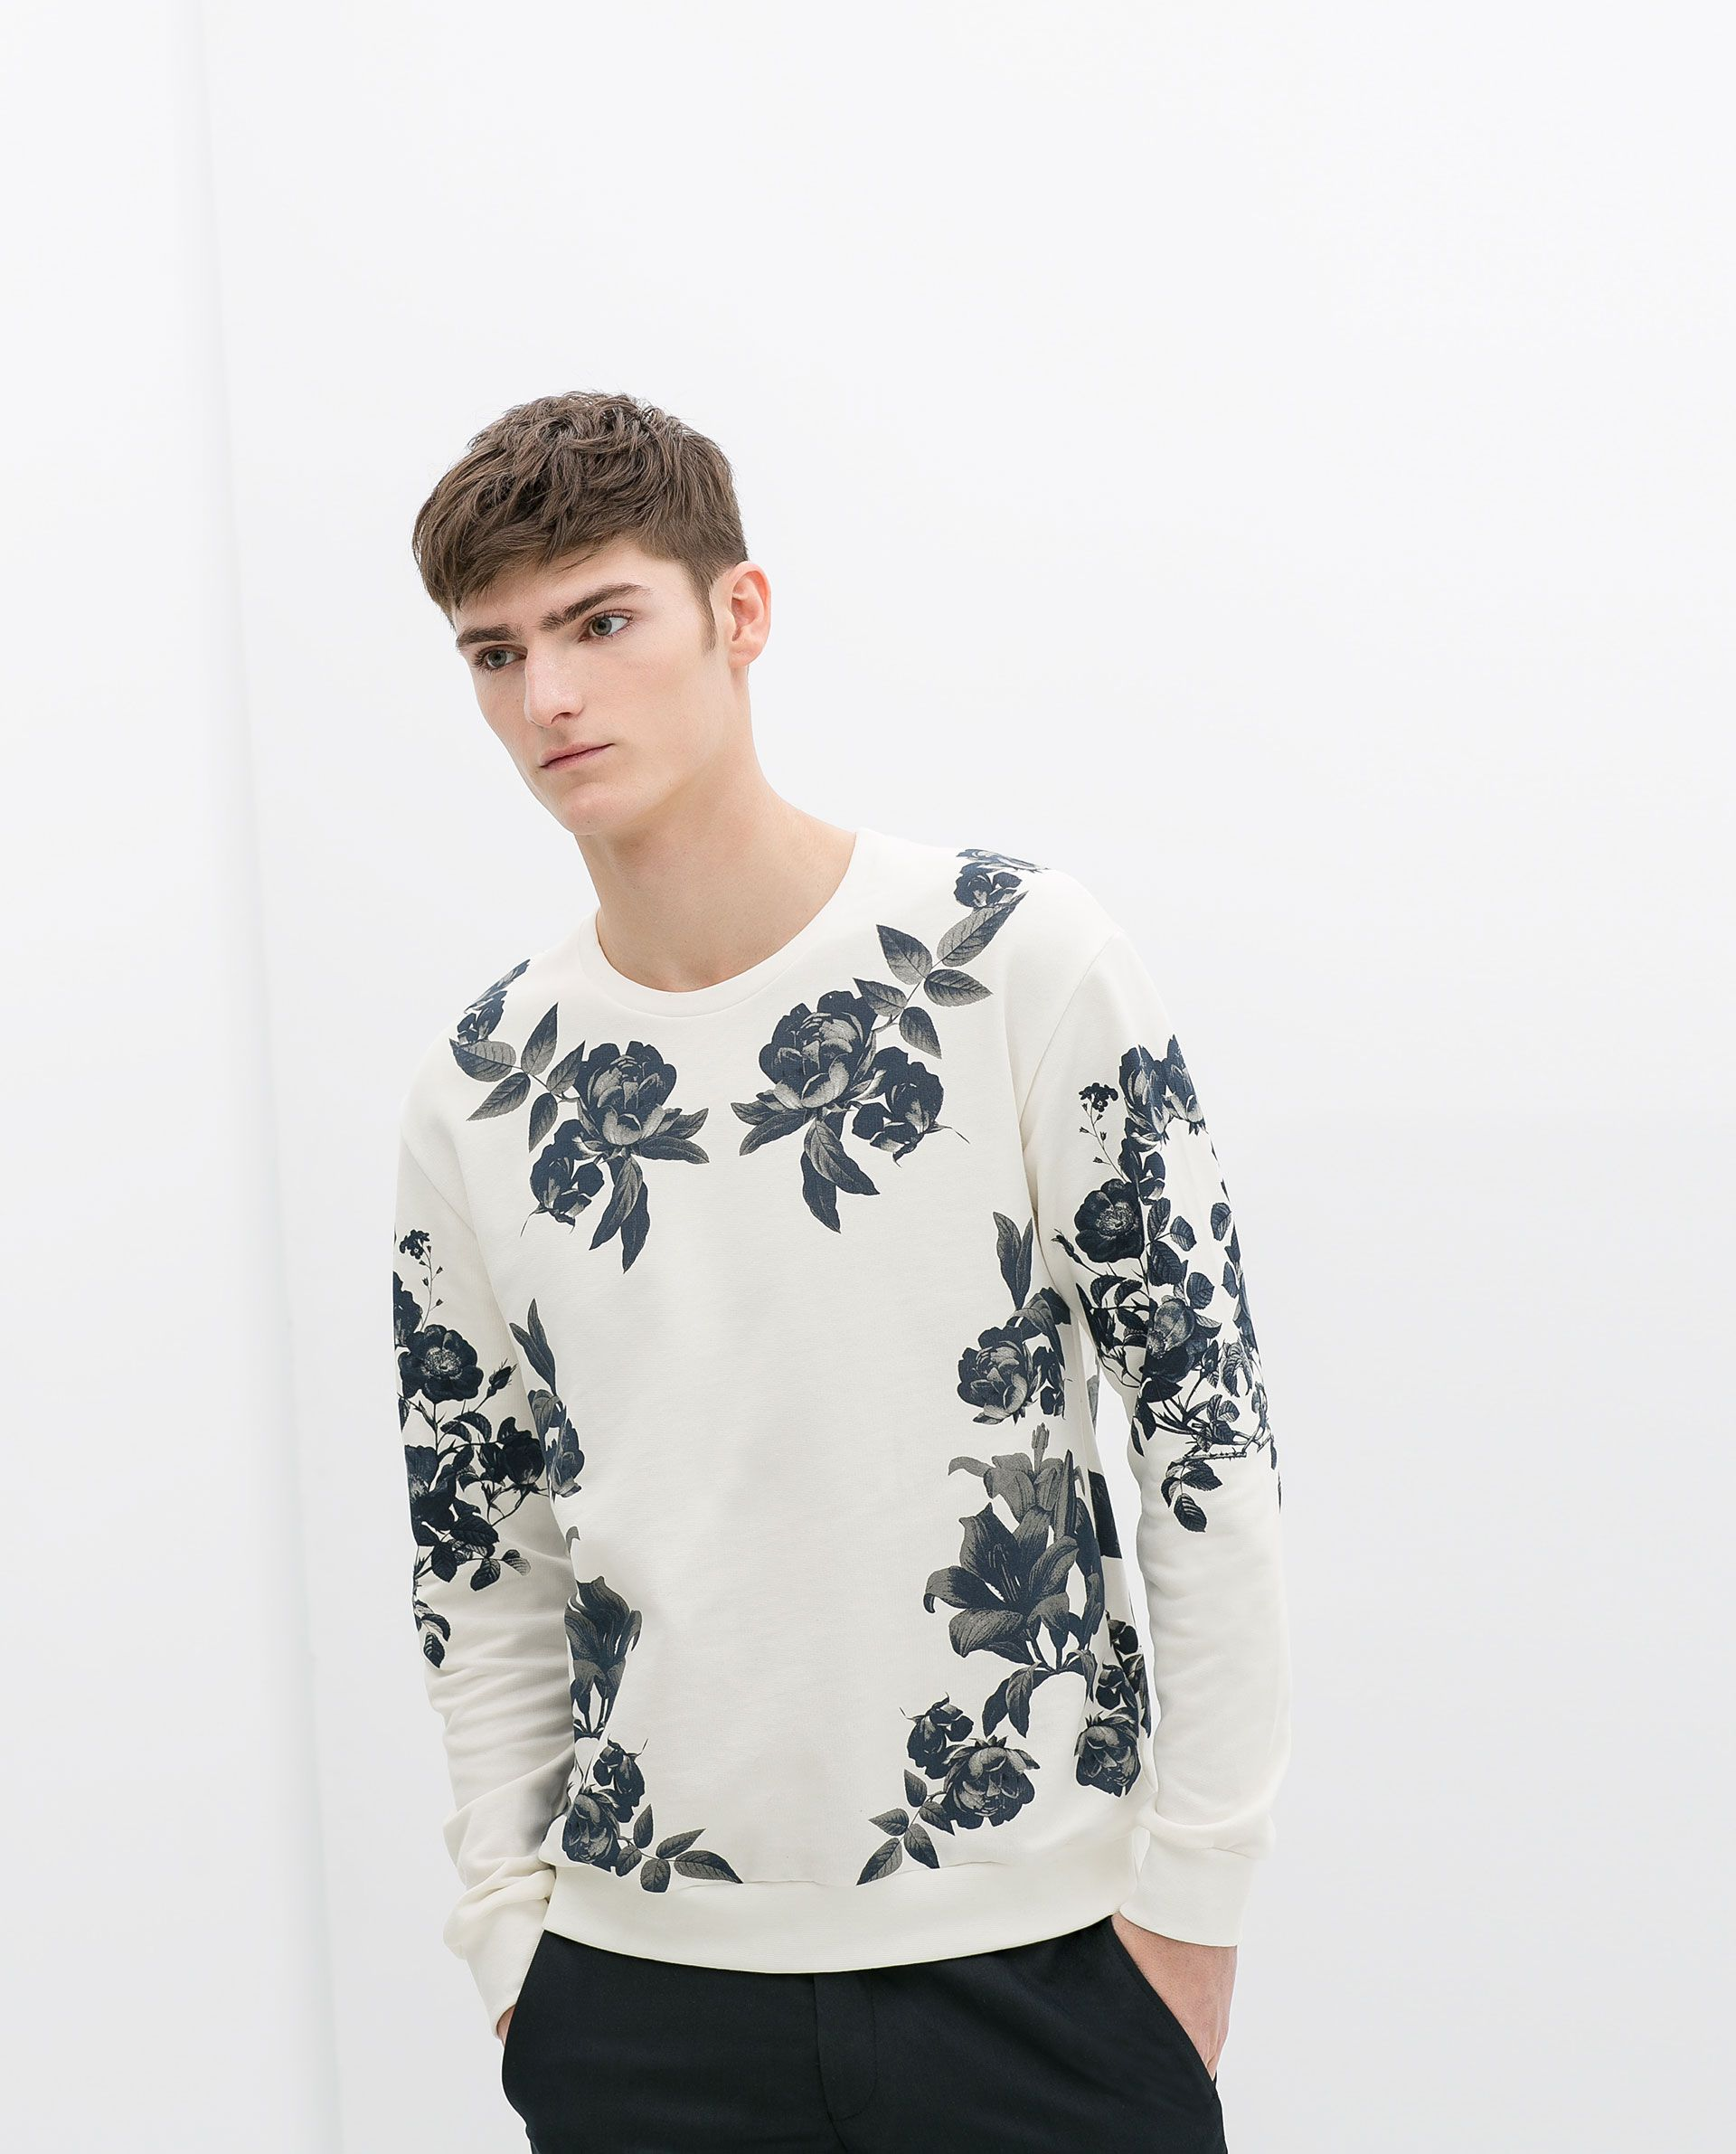 911da344 FLORAL SWEATSHIRT - Man - NEW THIS WEEK | ZARA Germany | Men's ...